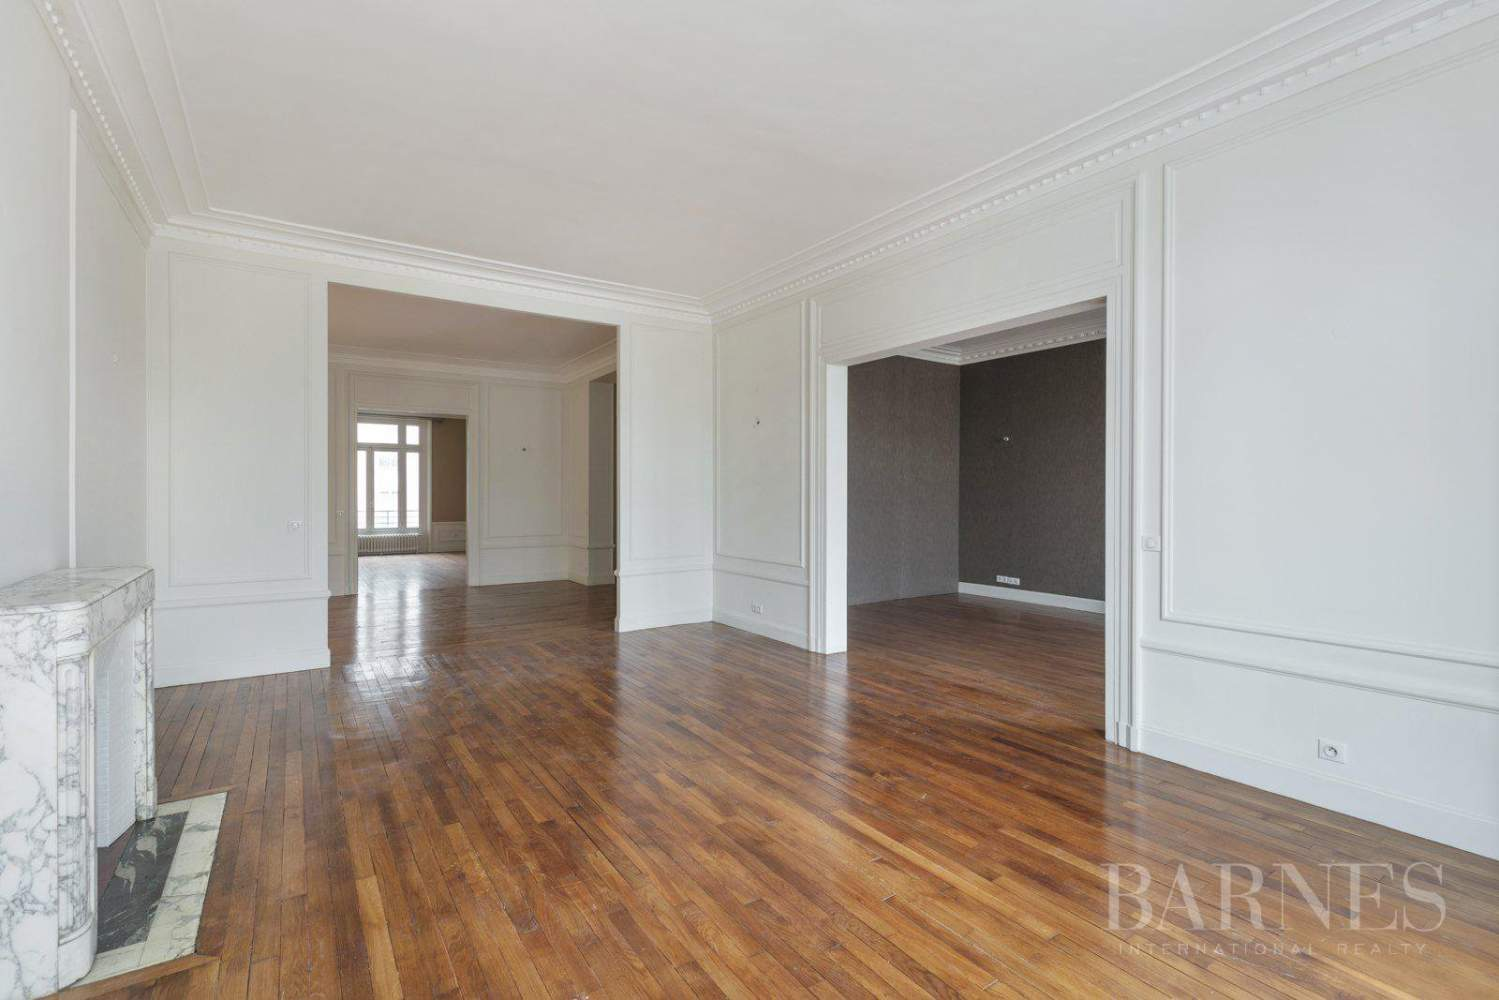 EXCLUSIVE - 8-ROOM APARTMENT FOR SALE - RENOVATED 1930s BUILDING - NEUILLY/PASTEUR picture 3